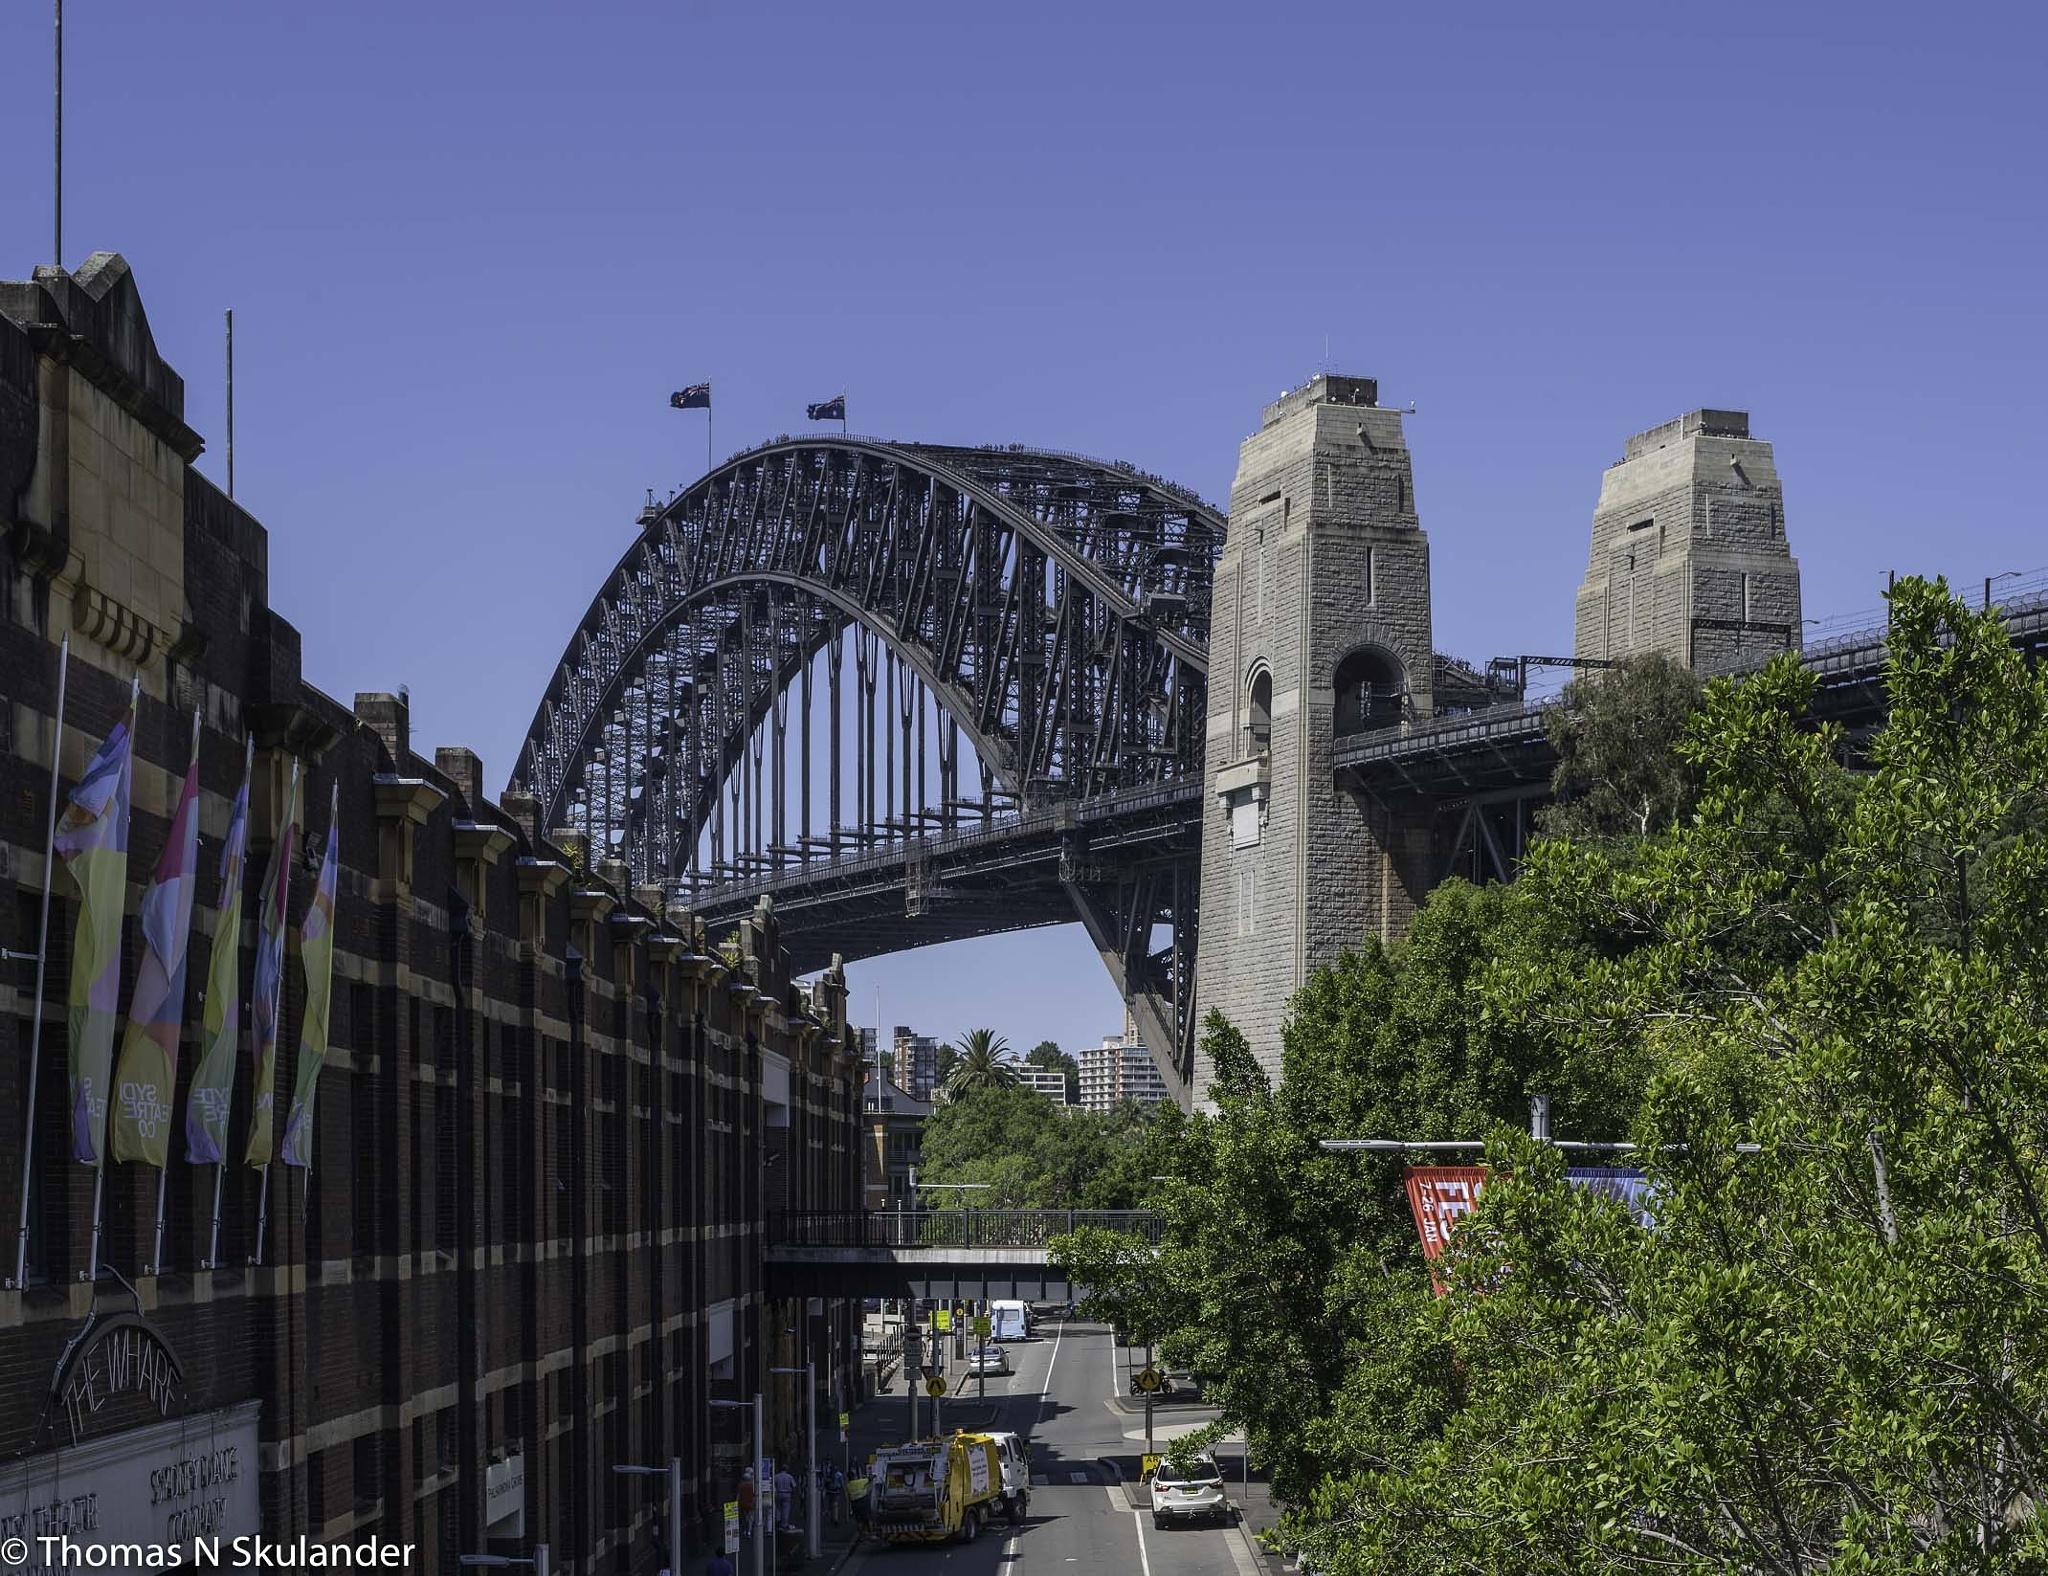 The Sydney Harbour Bridge by Thomas Skulander